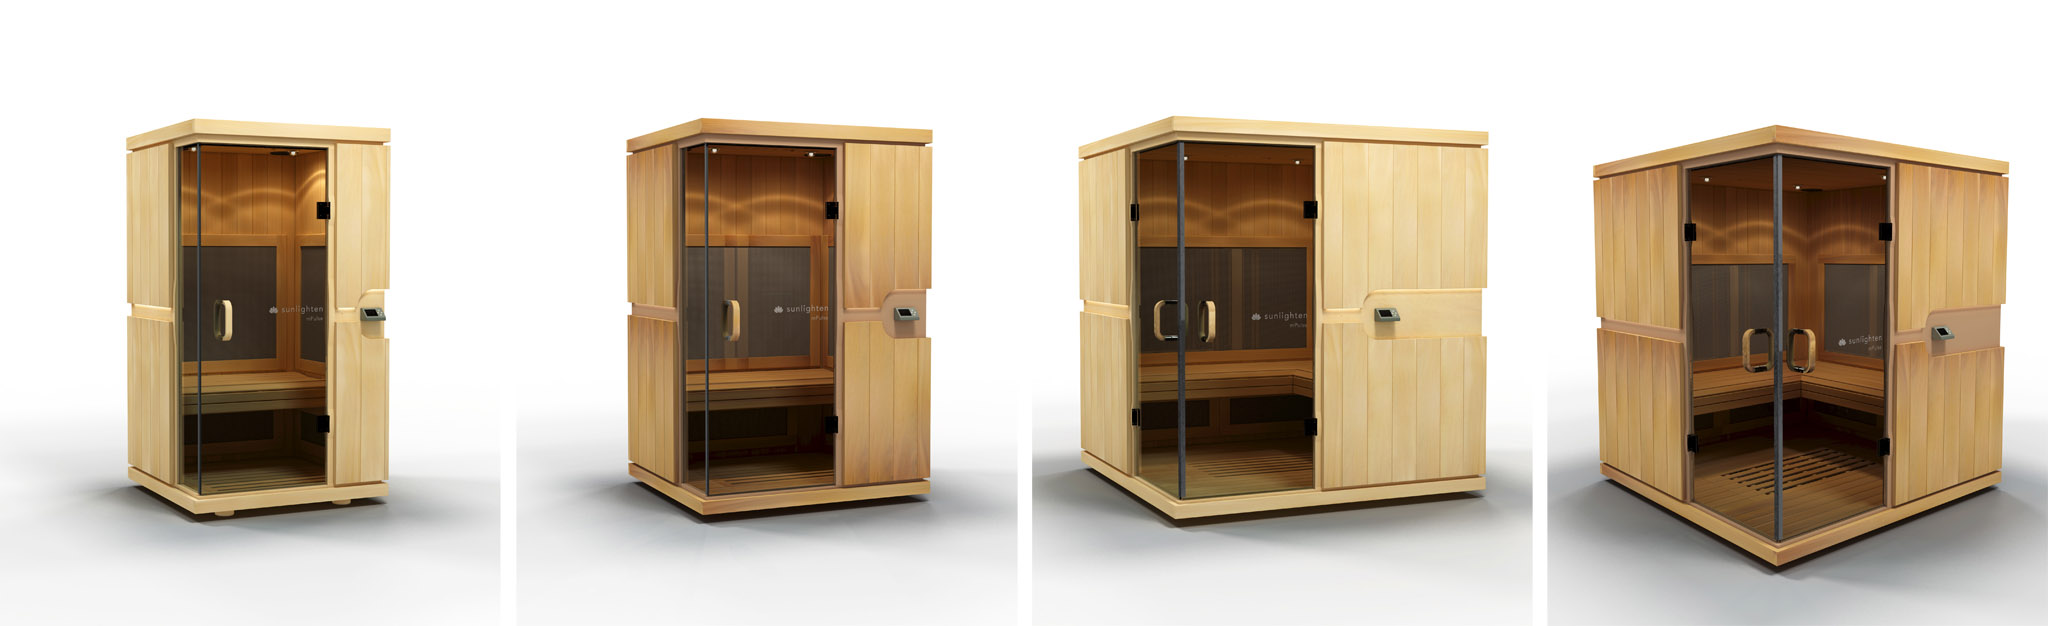 "Product visualization white room ""sweep"" style beauty shots of the mPulse line of saunas."